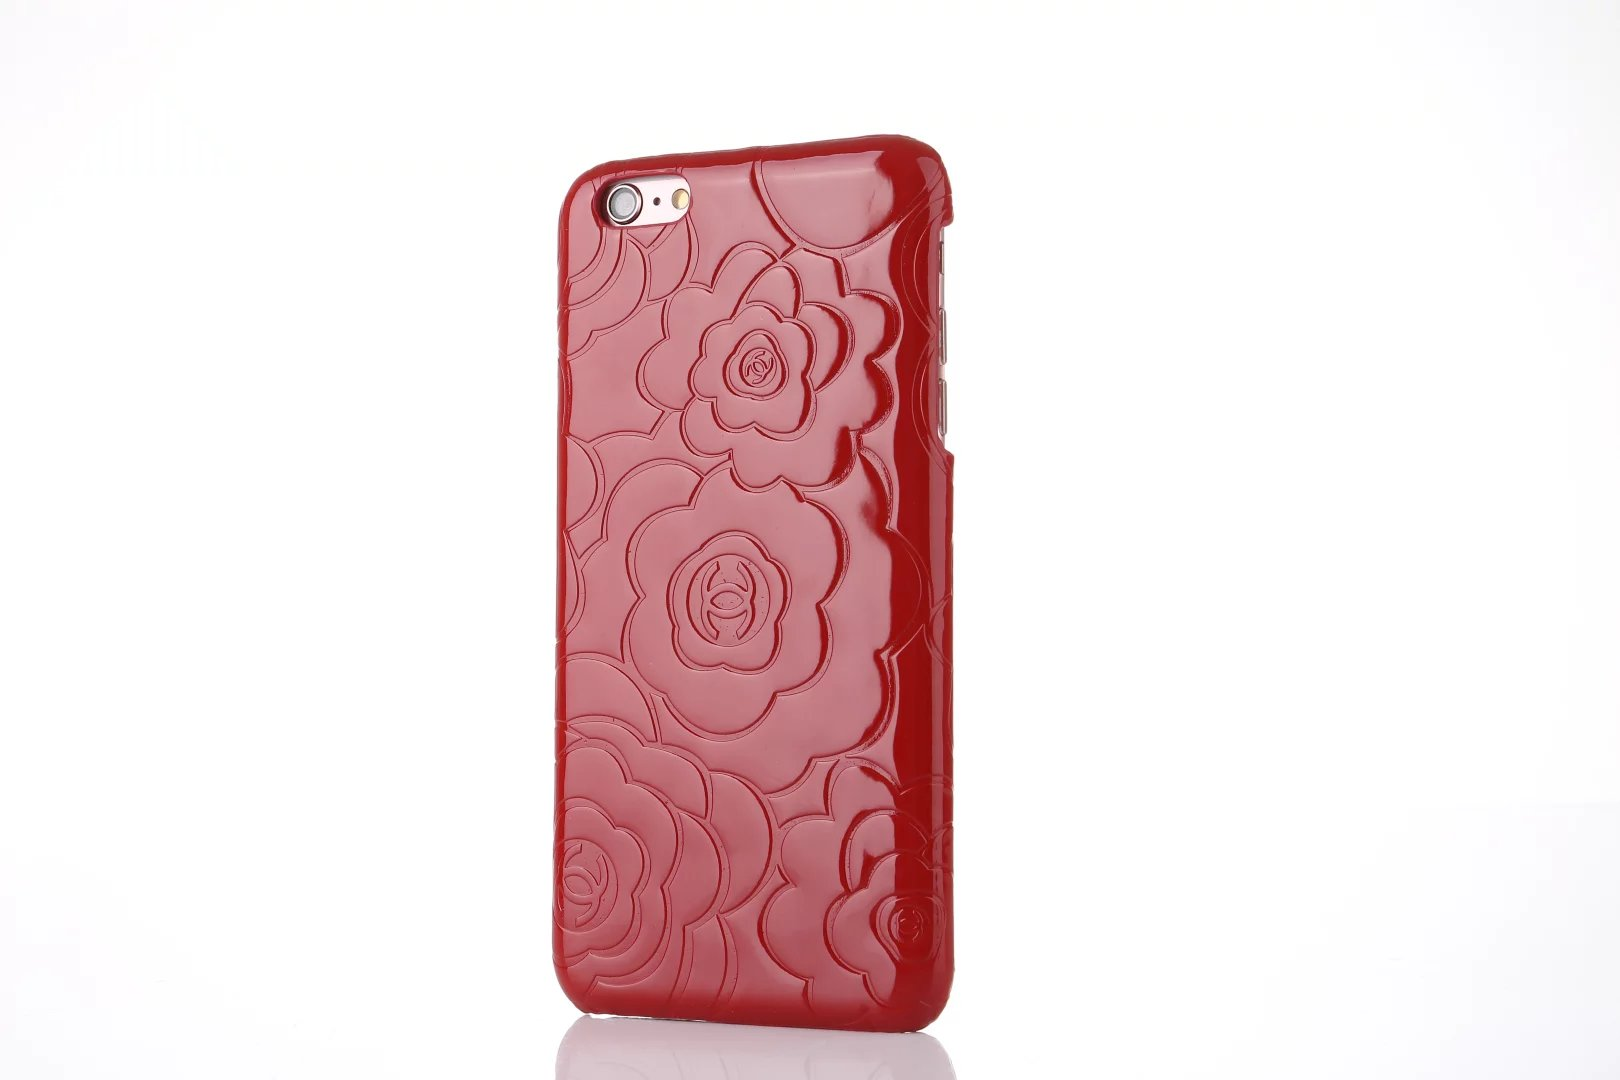 all iphone 7 cases great iphone 7 cases fashion iphone7 case shop iphone 7 cases cover i phone 7 protective case for iphone 7 designer cases for iphone 7 iphone 7 cases for women best iphone 7 phone cases